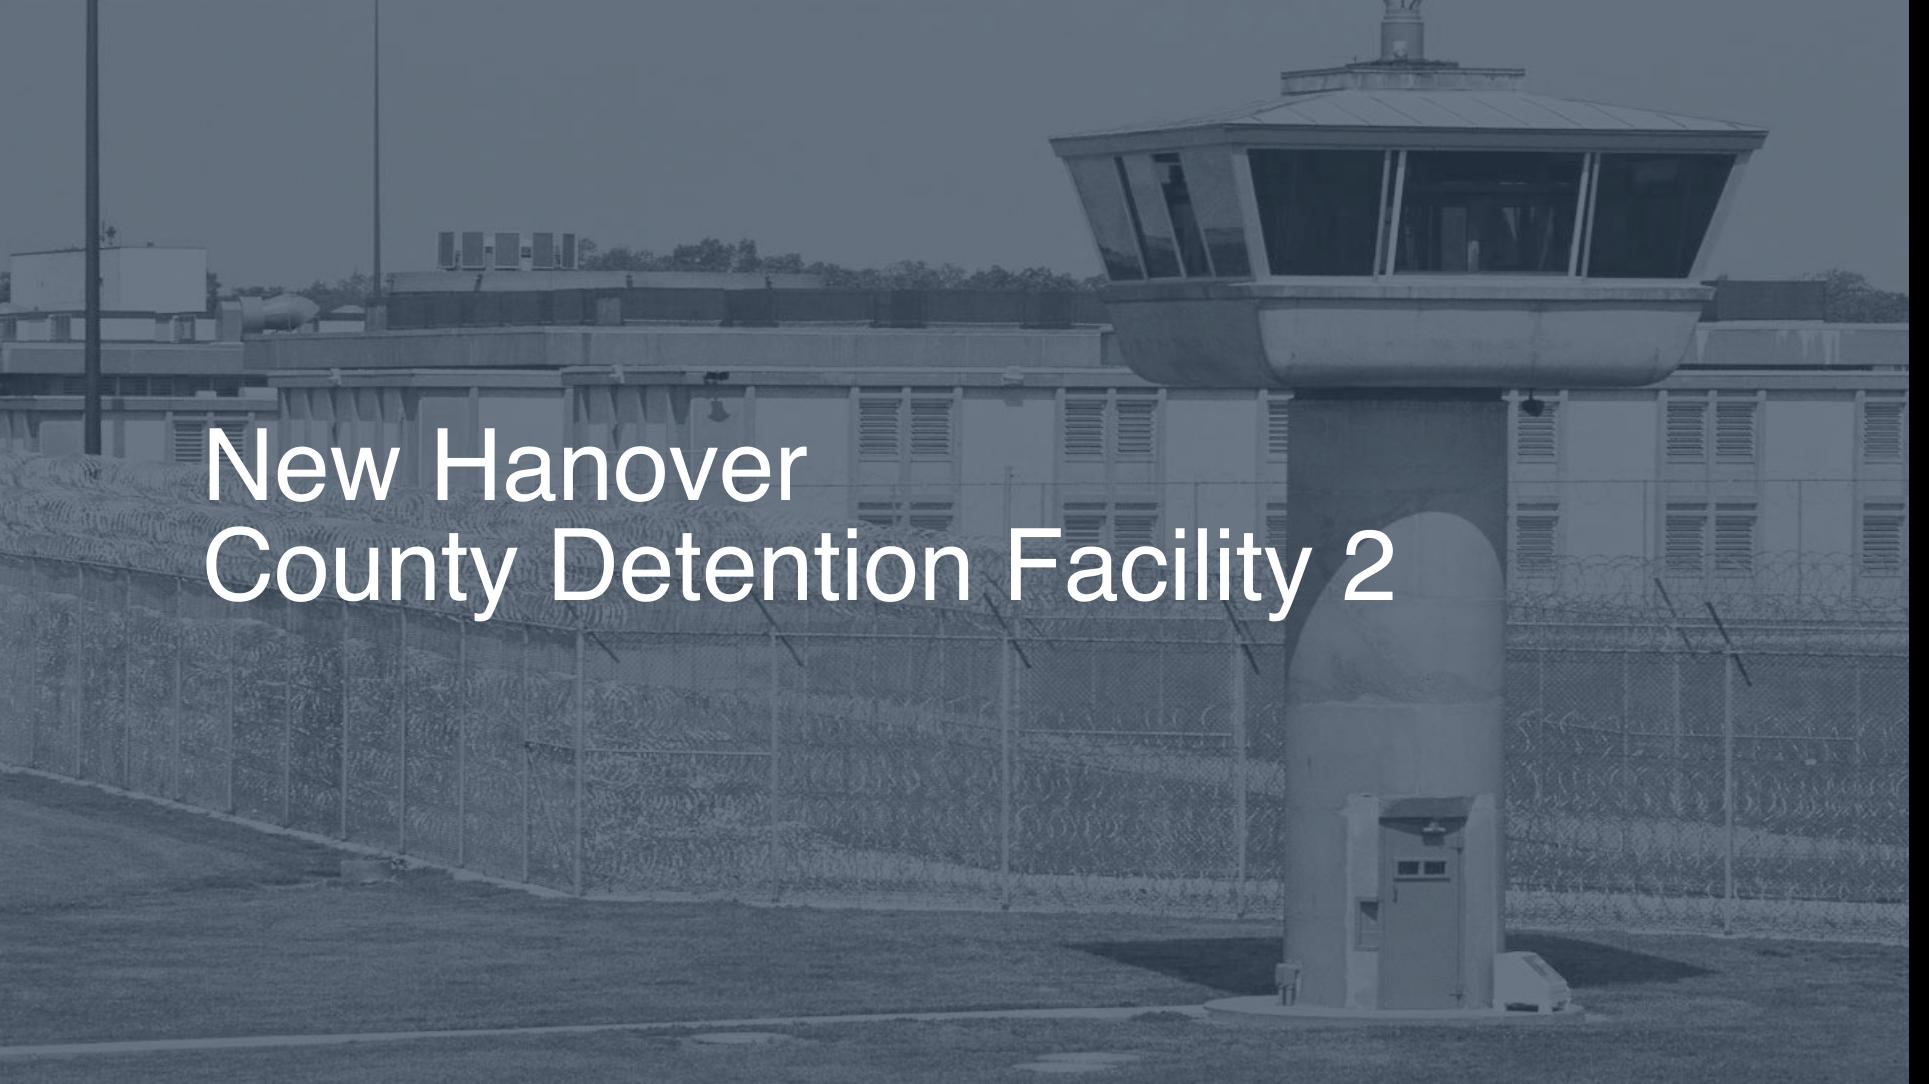 New Hanover County Detention Facility | Pigeonly - Inmate